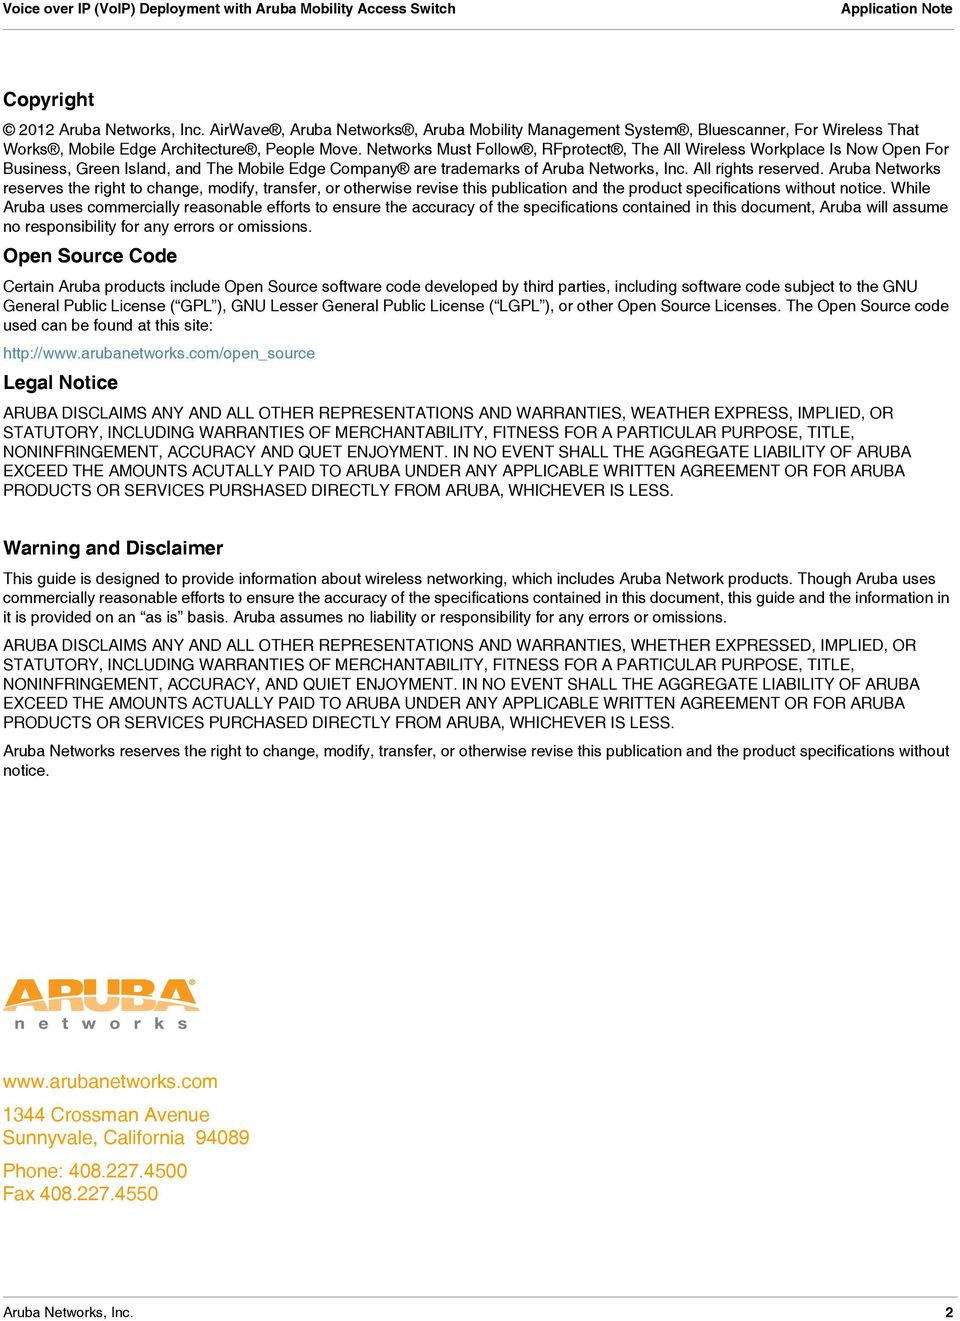 Aruba Networks reserves the right to change, modify, transfer, or otherwise revise this publication and the product specifications without notice.